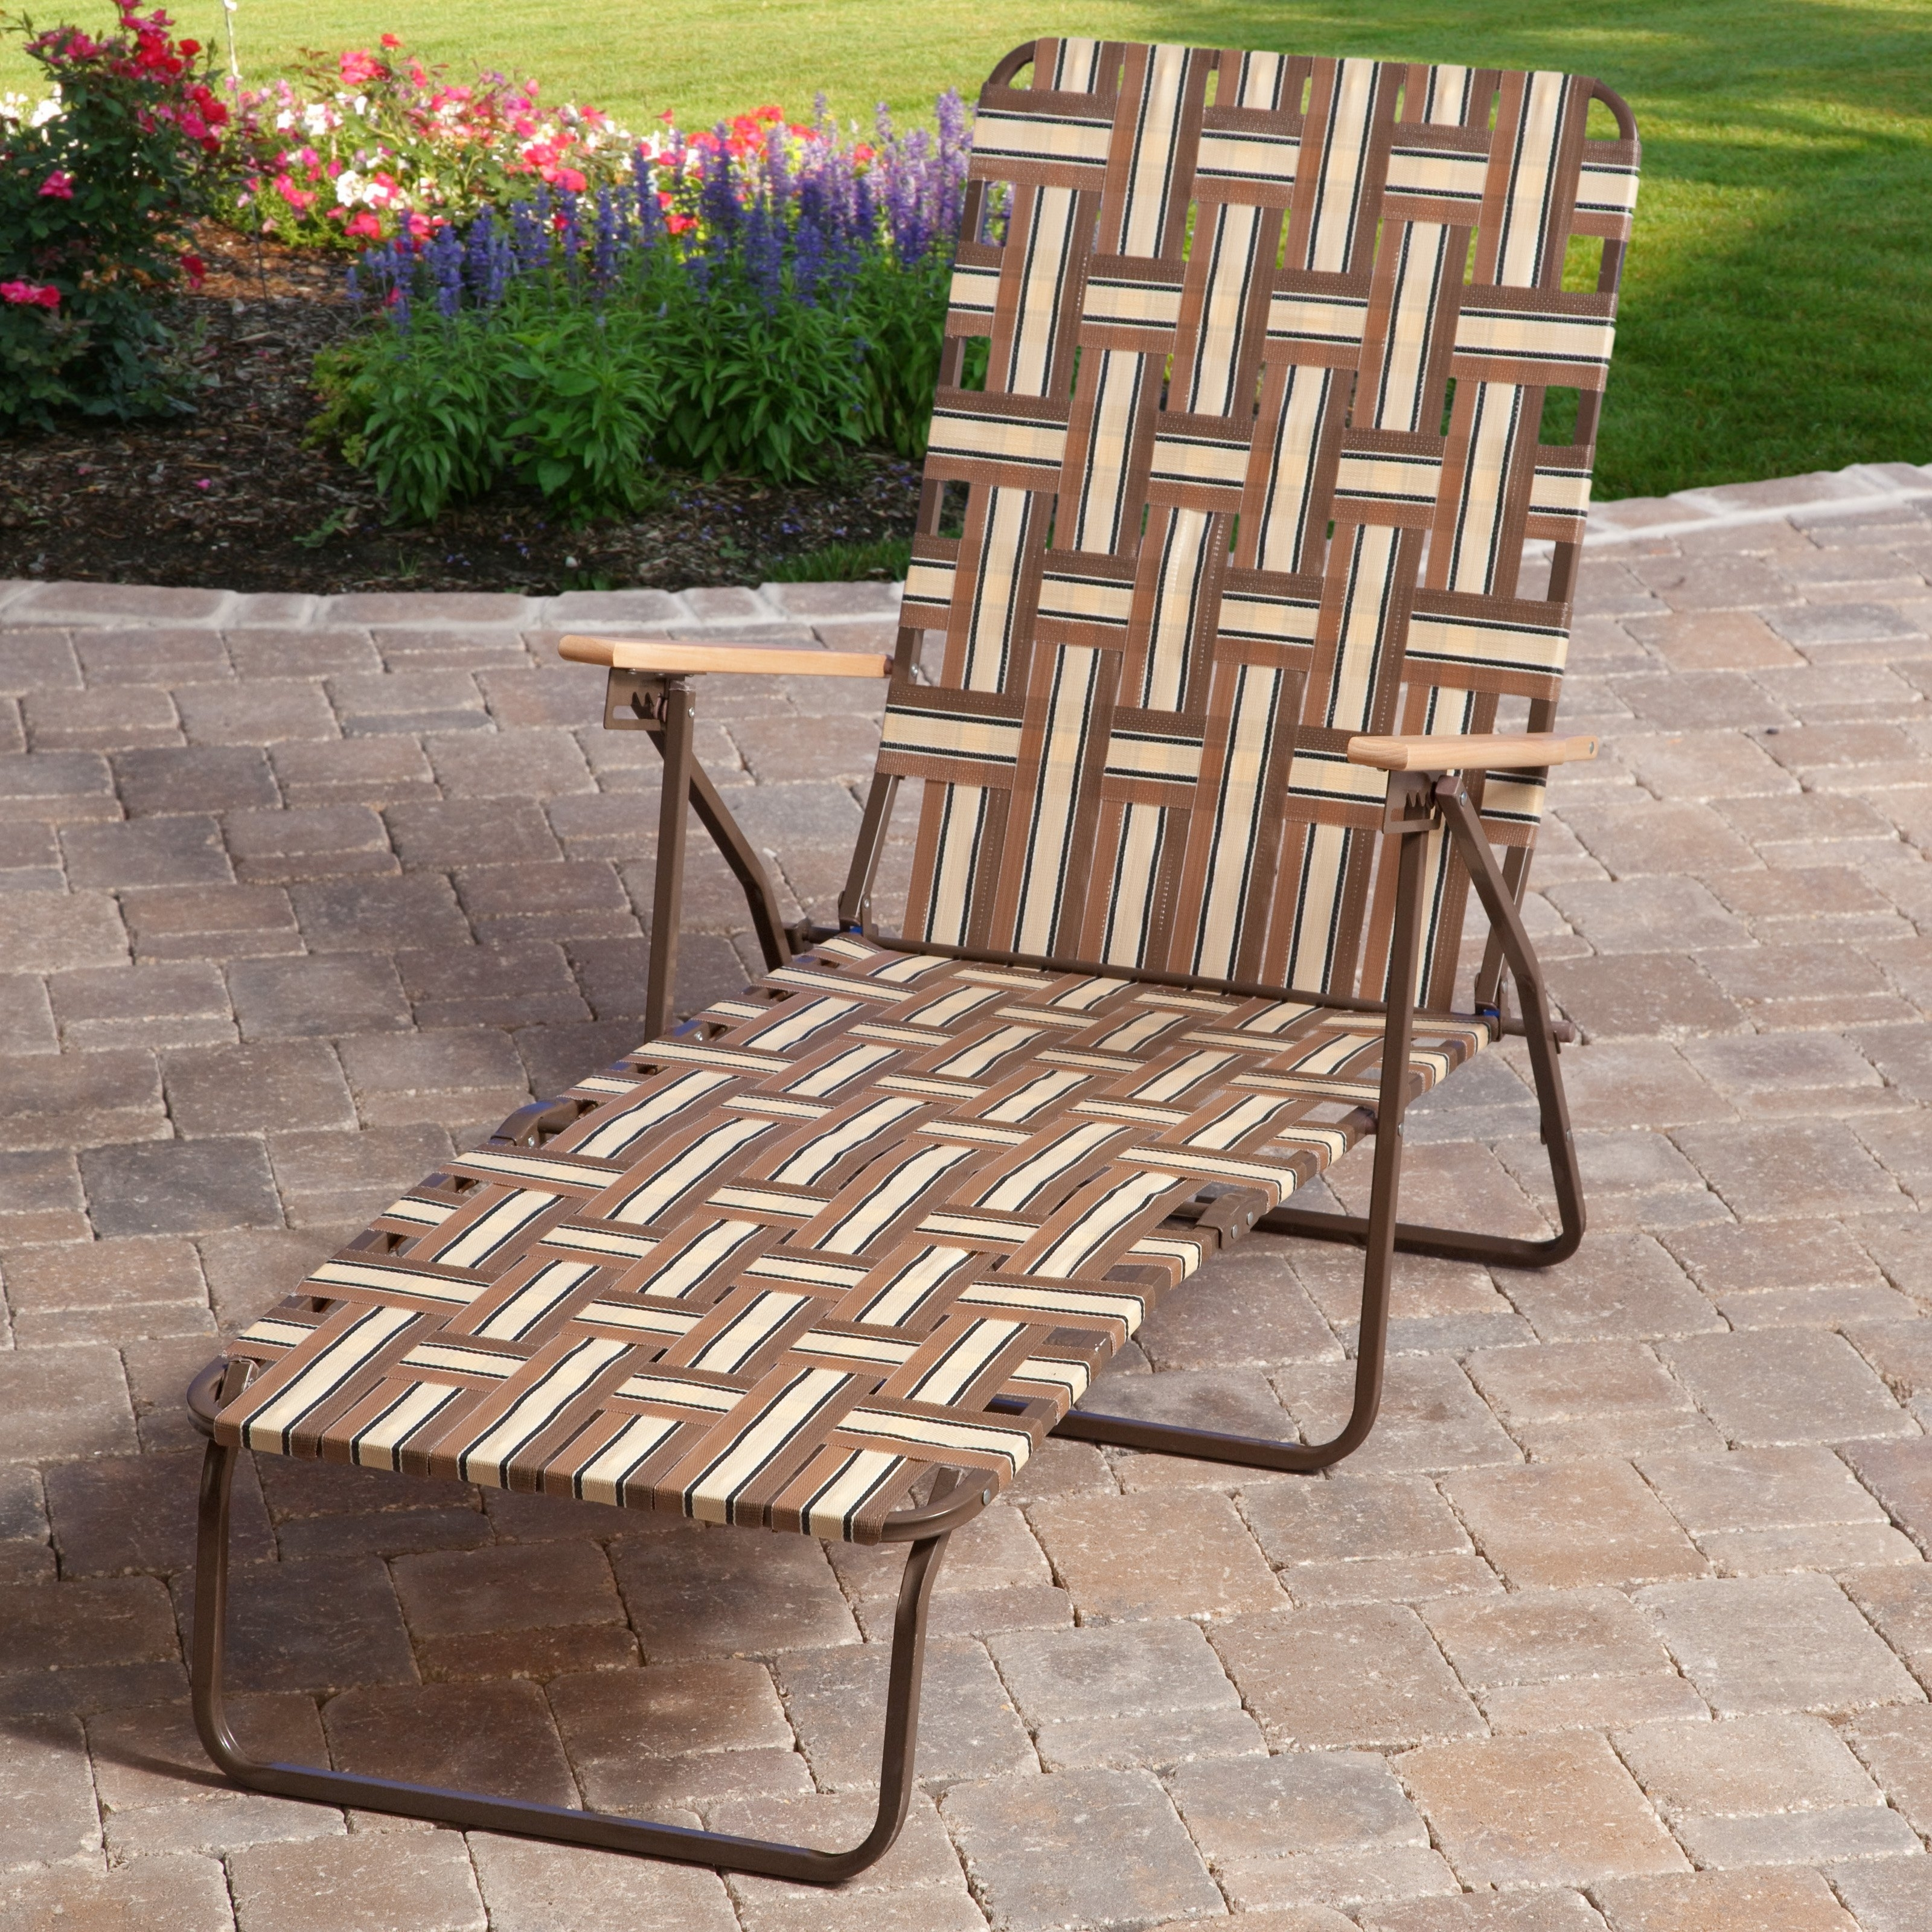 Foldable Chaise Lounge Outdoor Chairs Throughout Favorite Rio Deluxe Folding Web Chaise Lounge – Walmart (View 4 of 15)